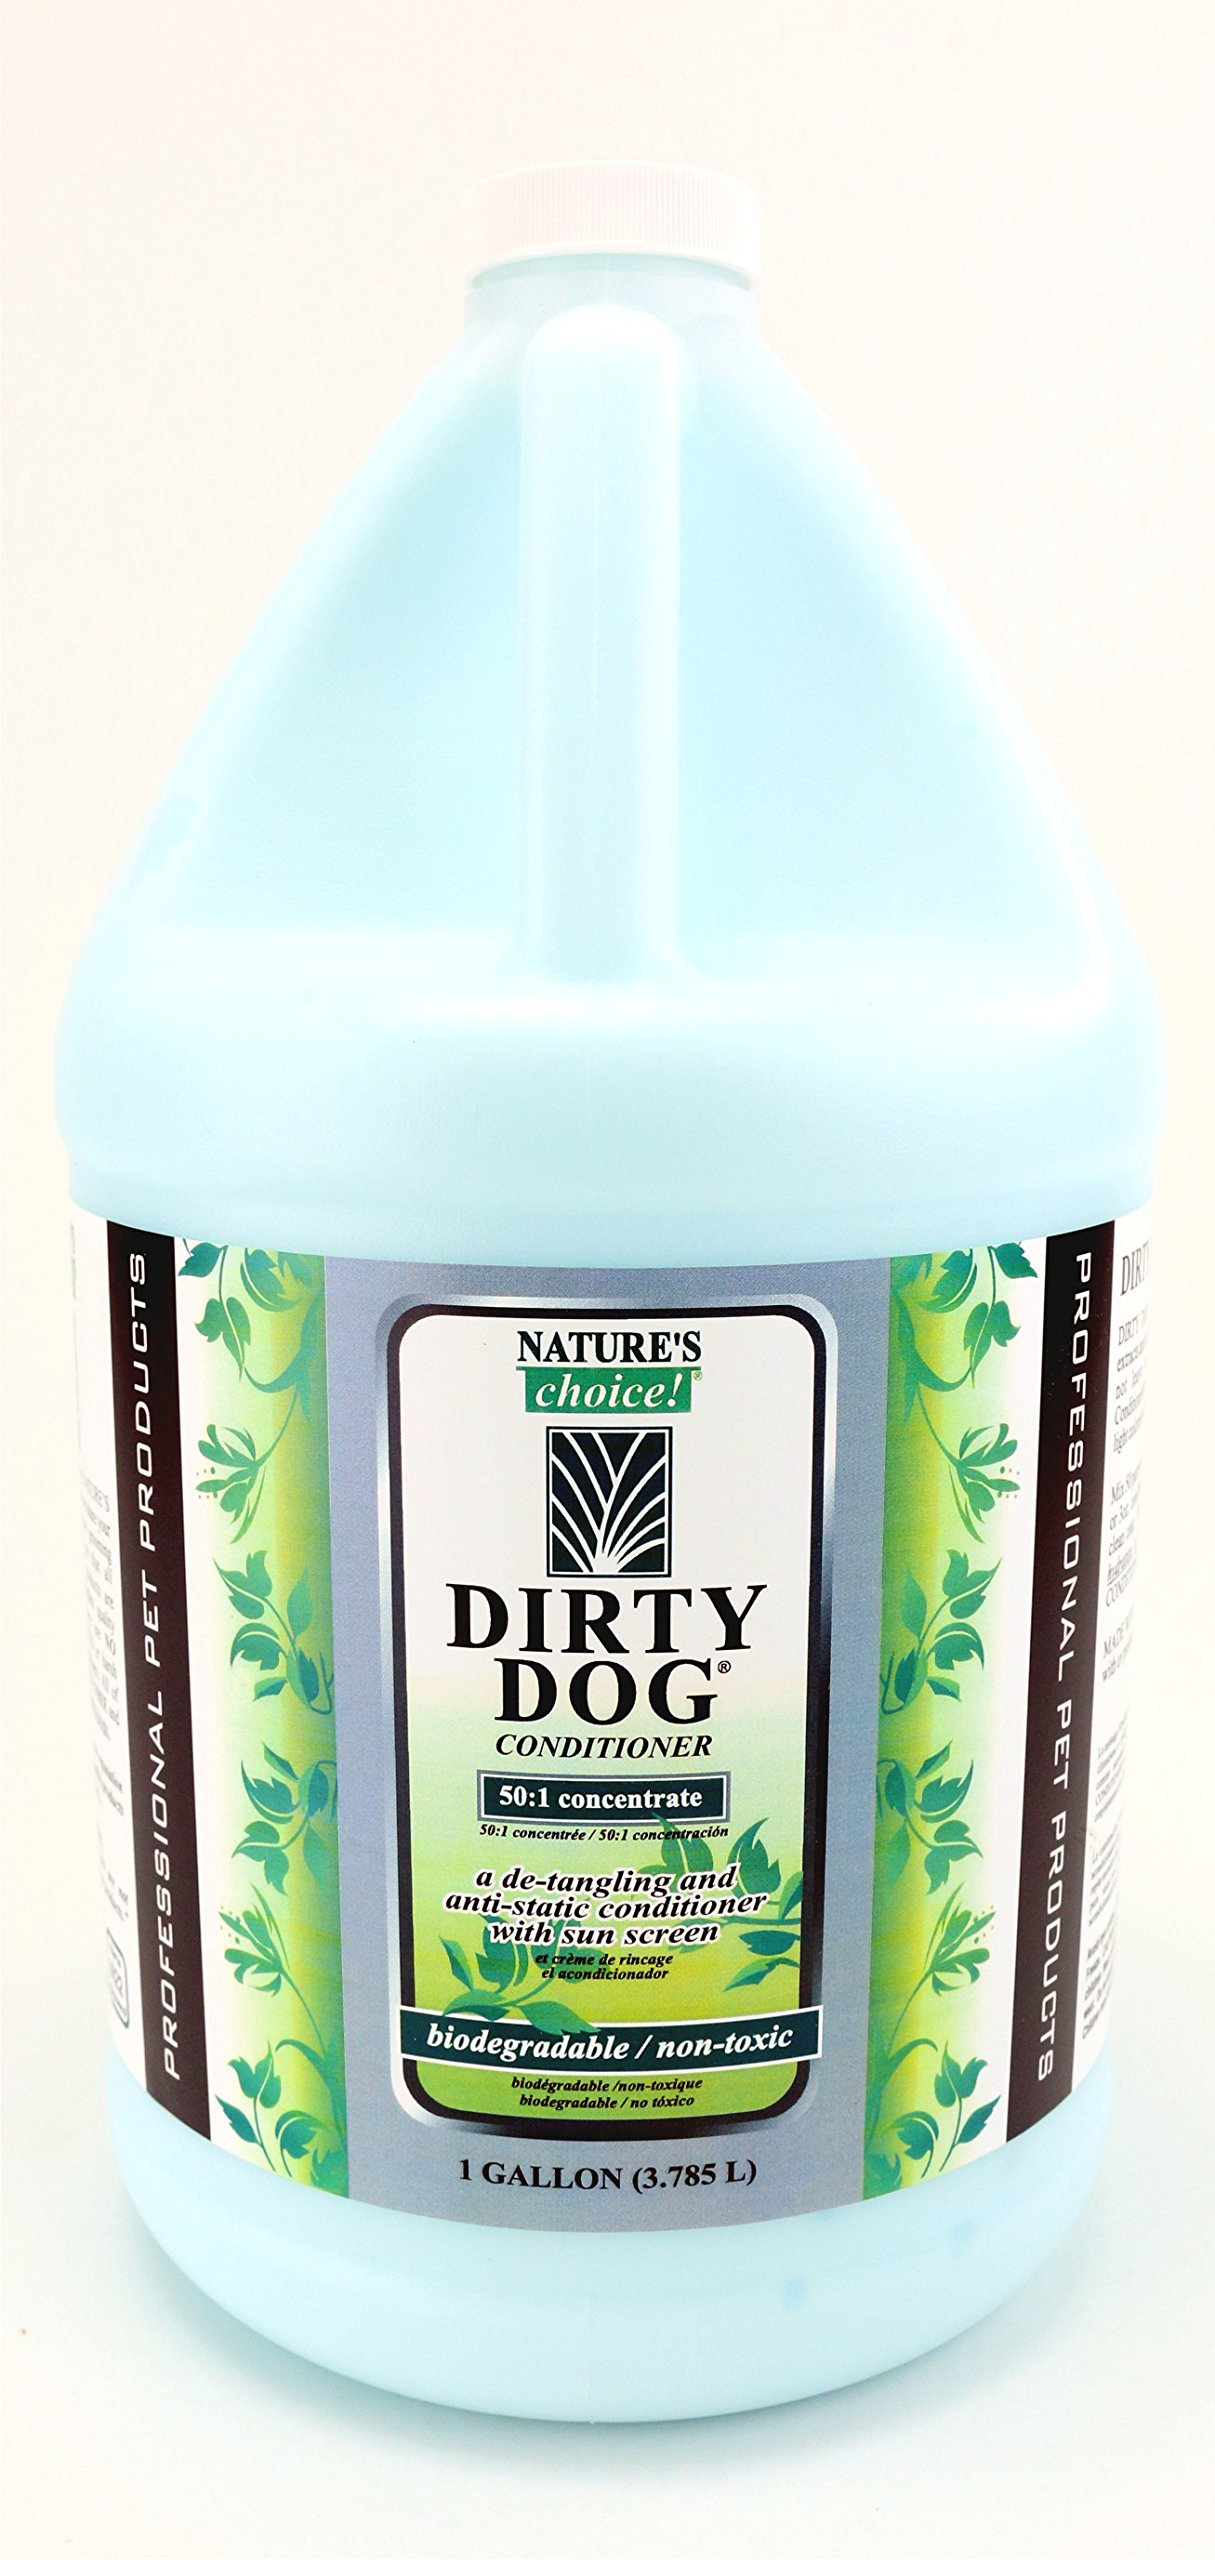 Nature's Choice Dirty Dog Conditioner 50:1 Gallon